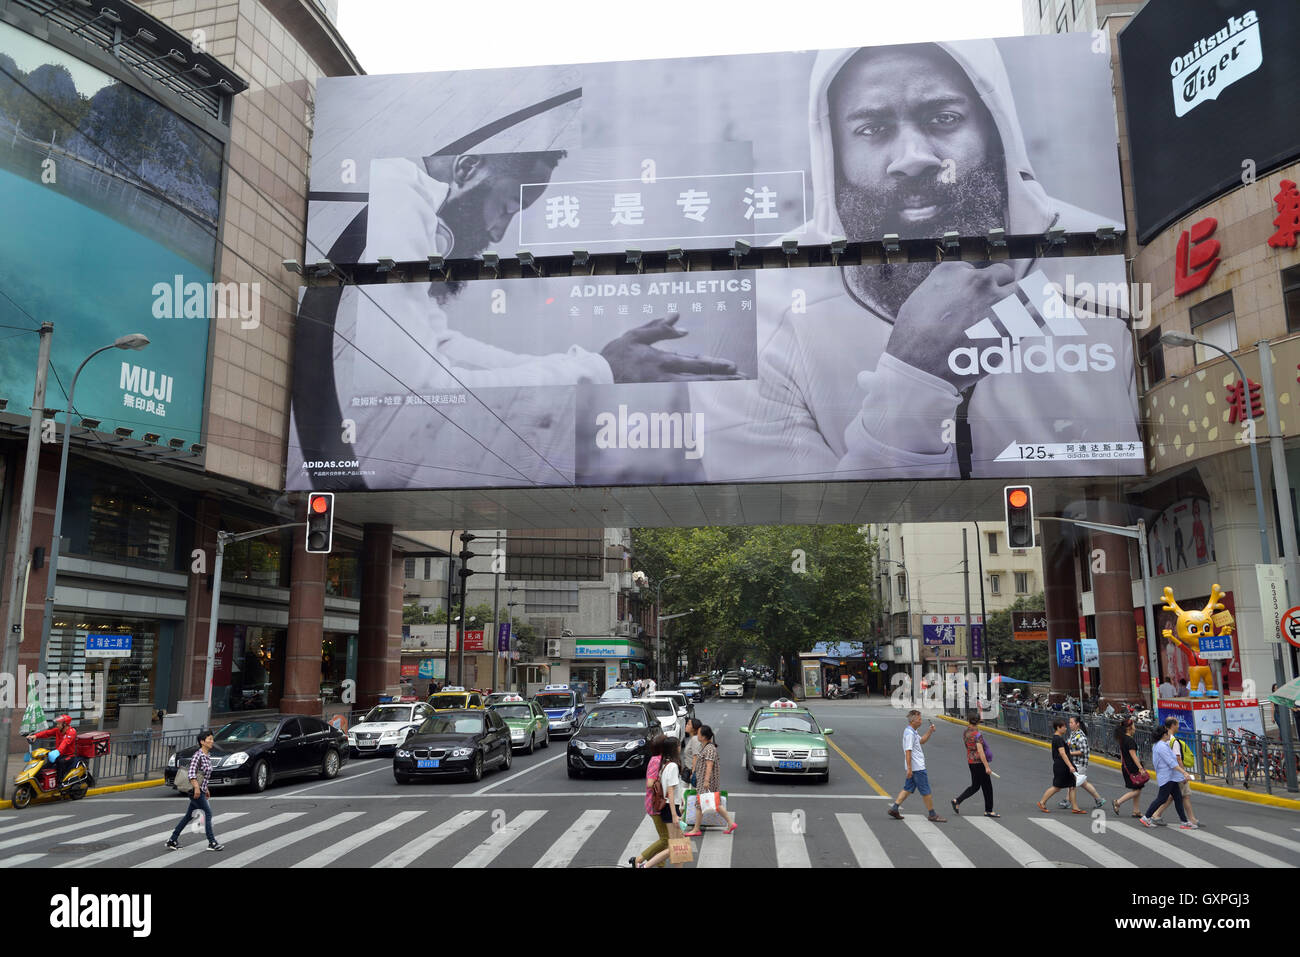 Adidas advertisement in Shanghai, China. - Stock Image